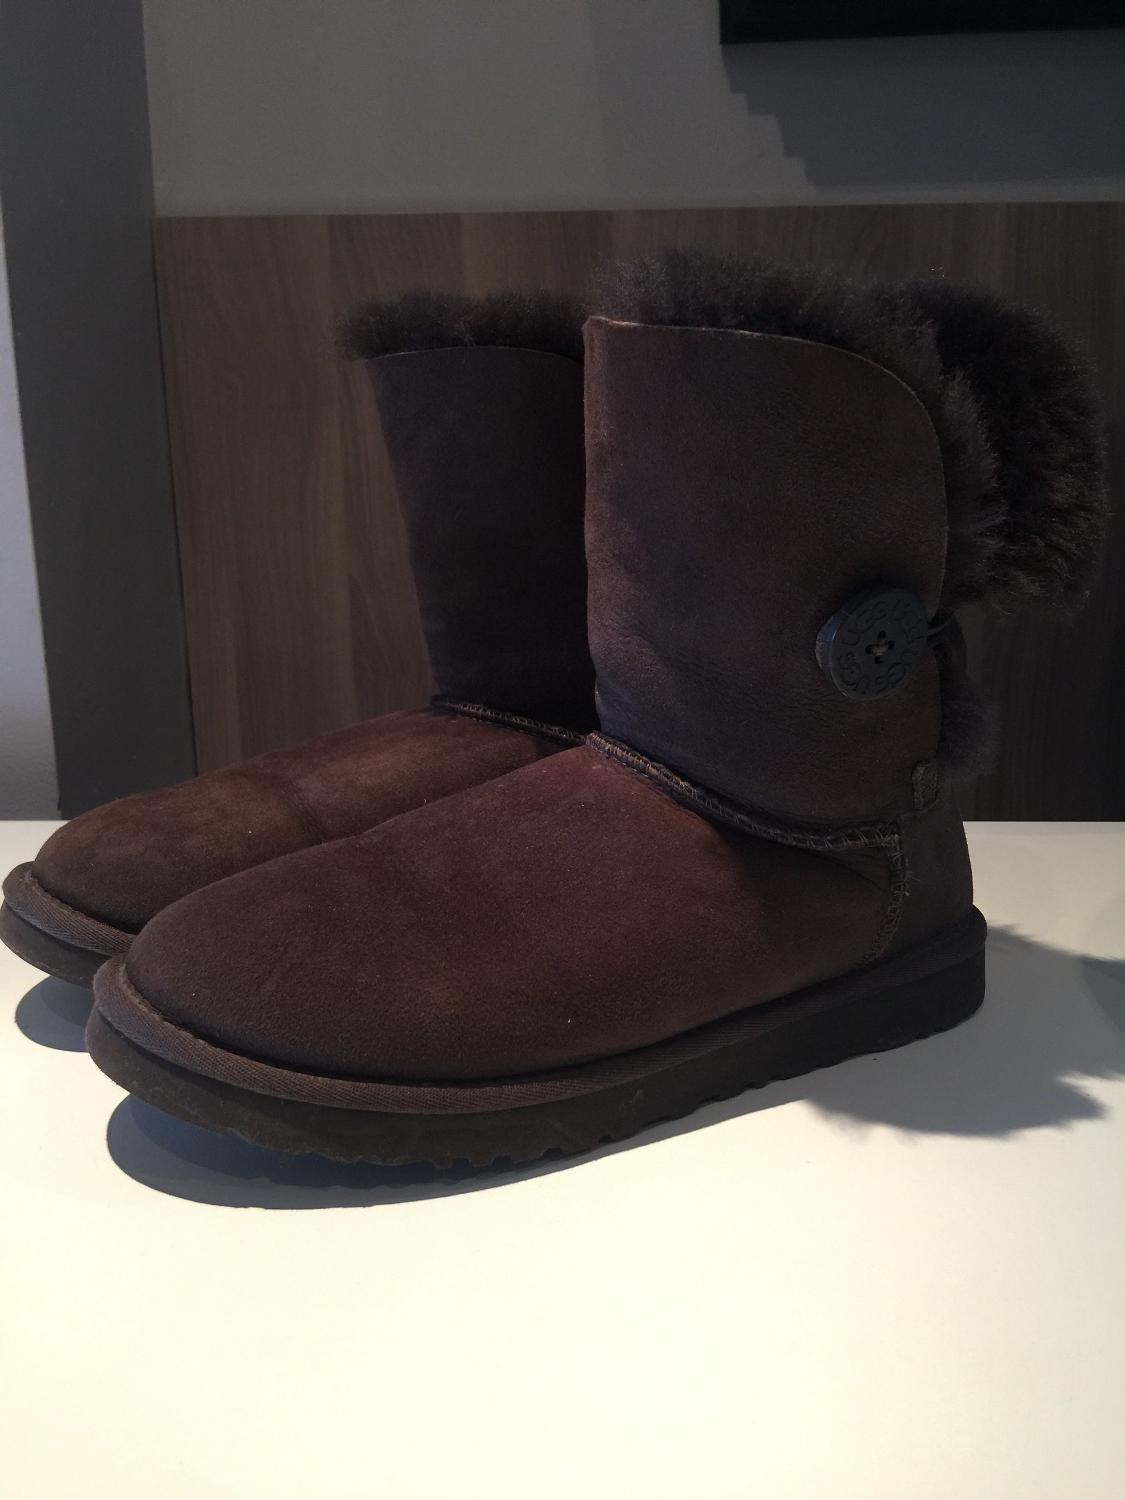 buy authentic uggs online canada